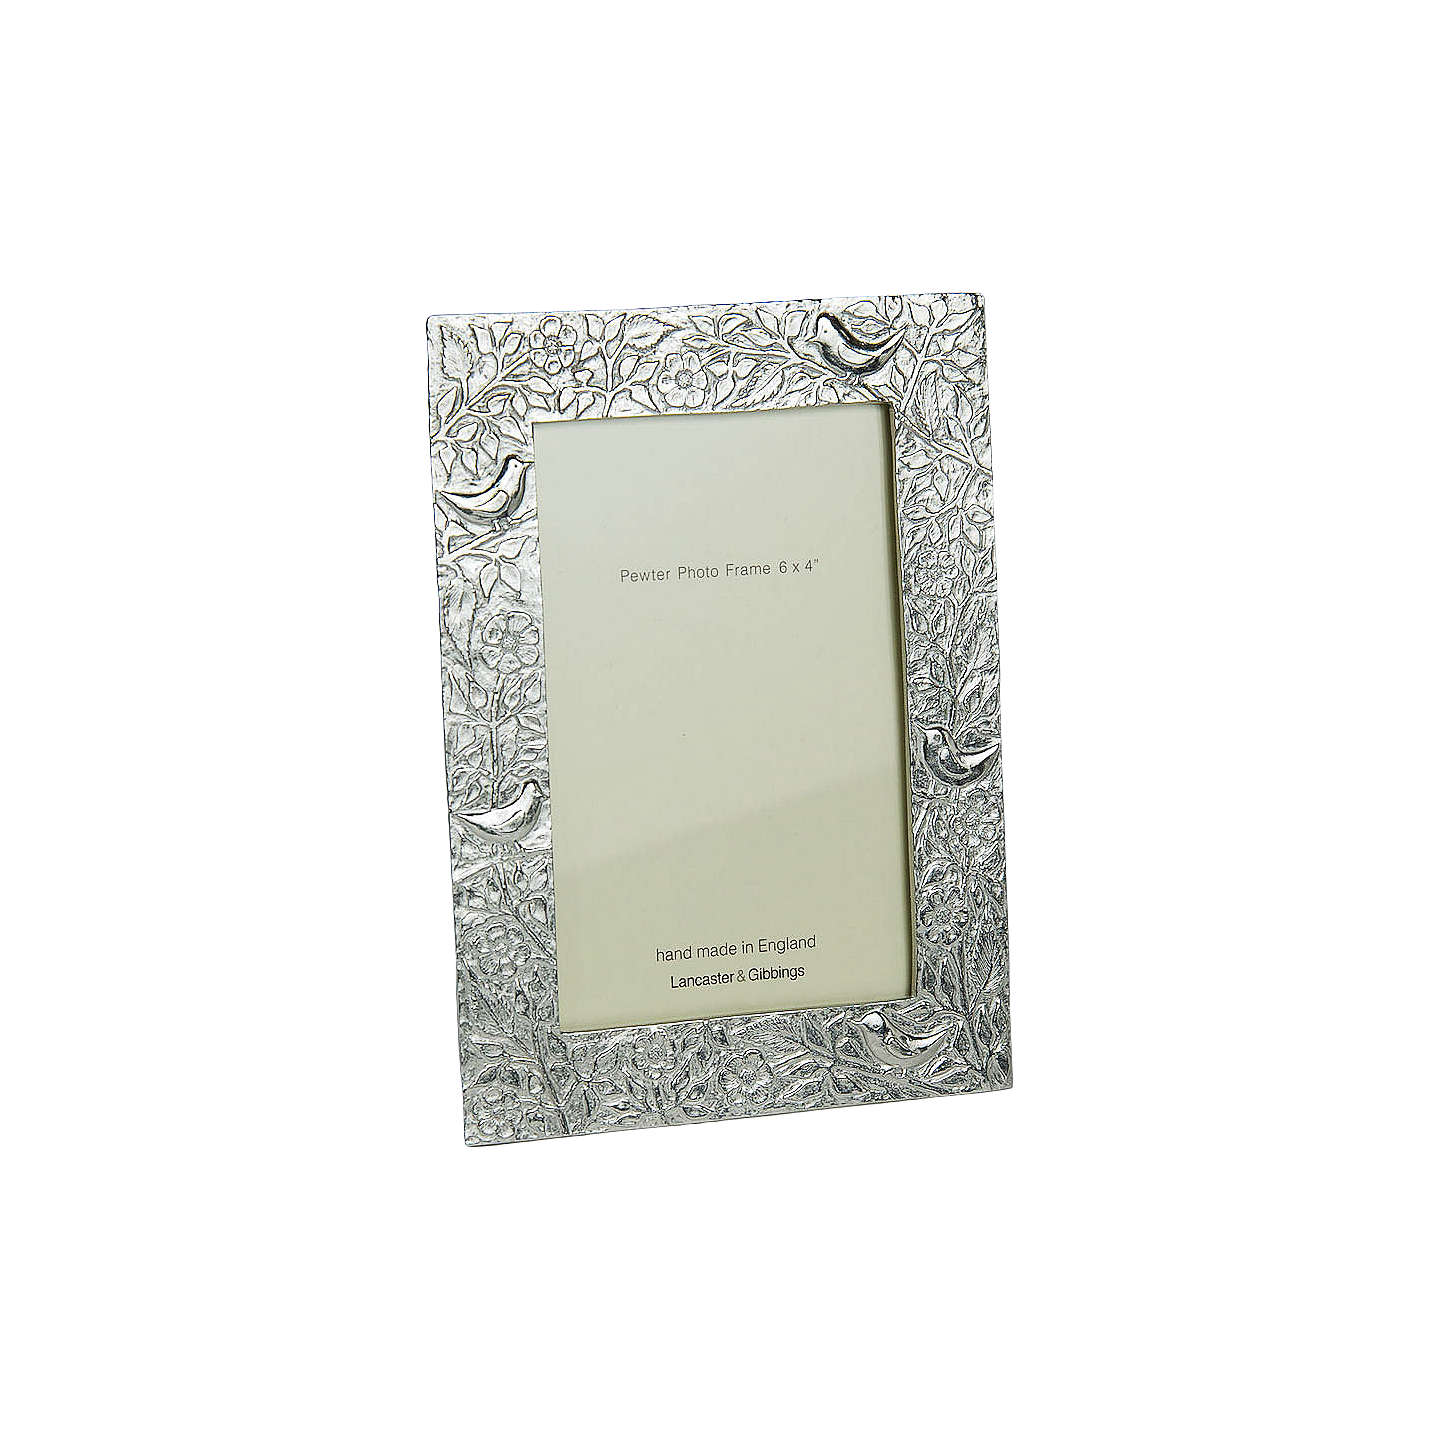 "BuyLancaster and Gibbings Pewter Birds Photo Frame, 4 x 6"" (10 x 15cm) Online at johnlewis.com"